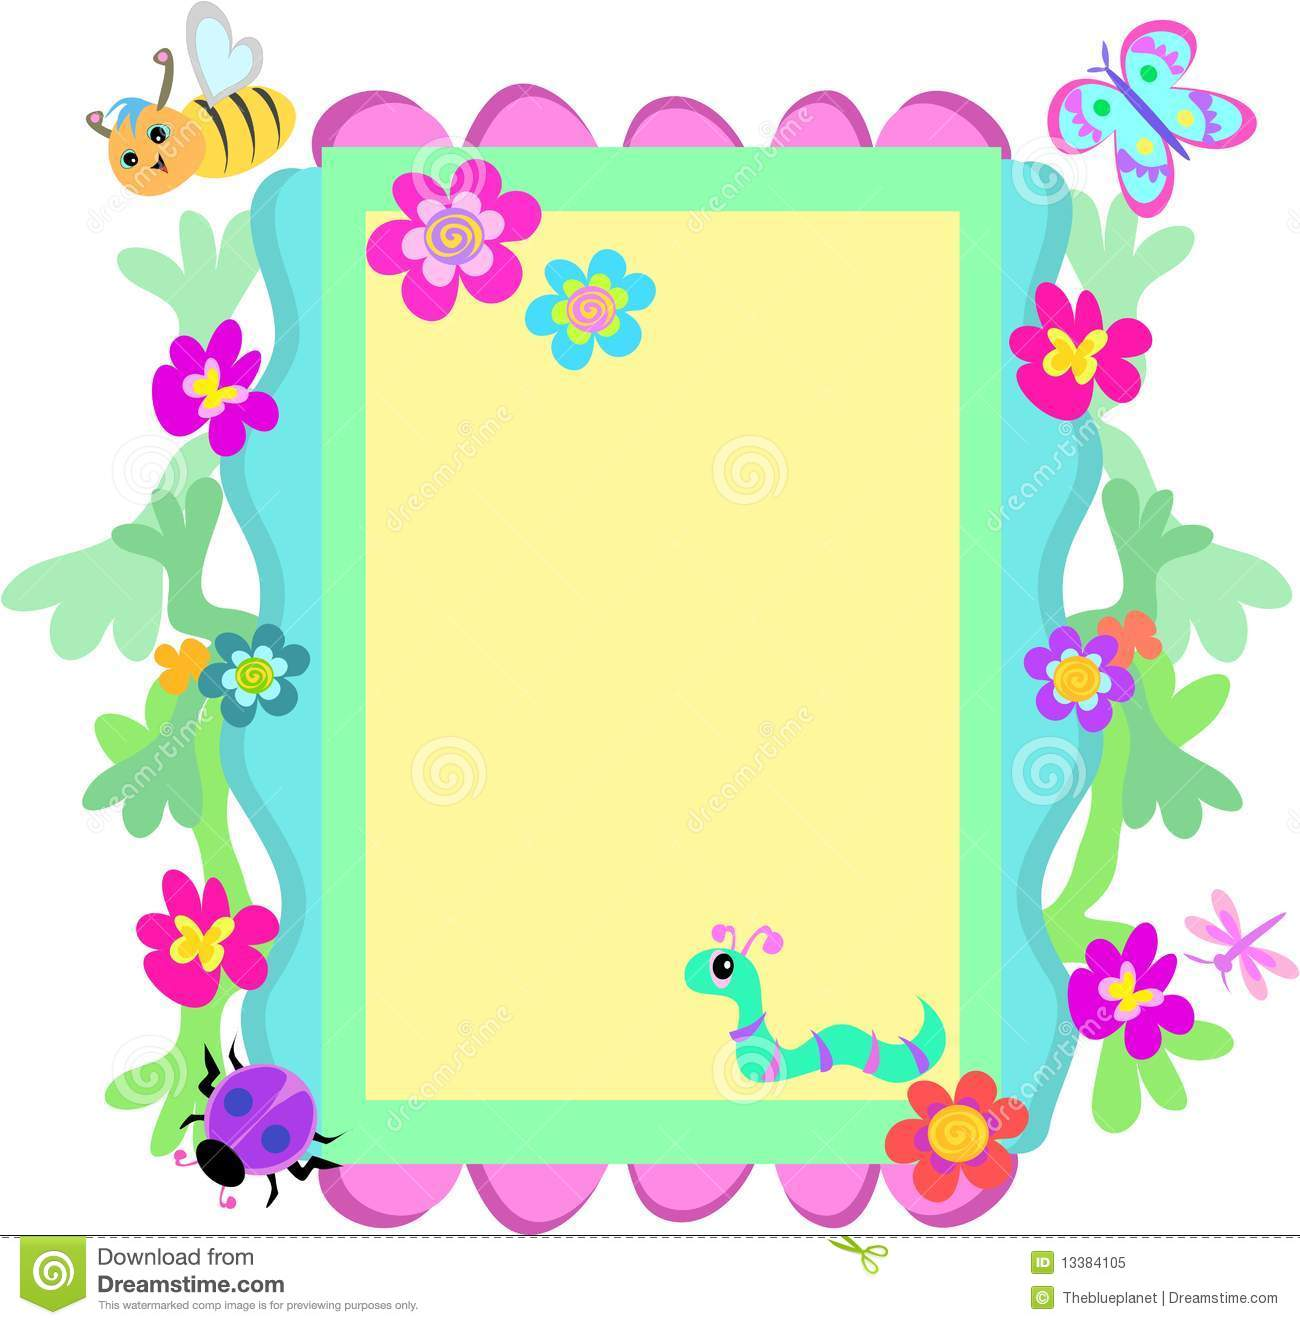 ... similar stock images of ` Whimsical Frame of Flowers and Insects